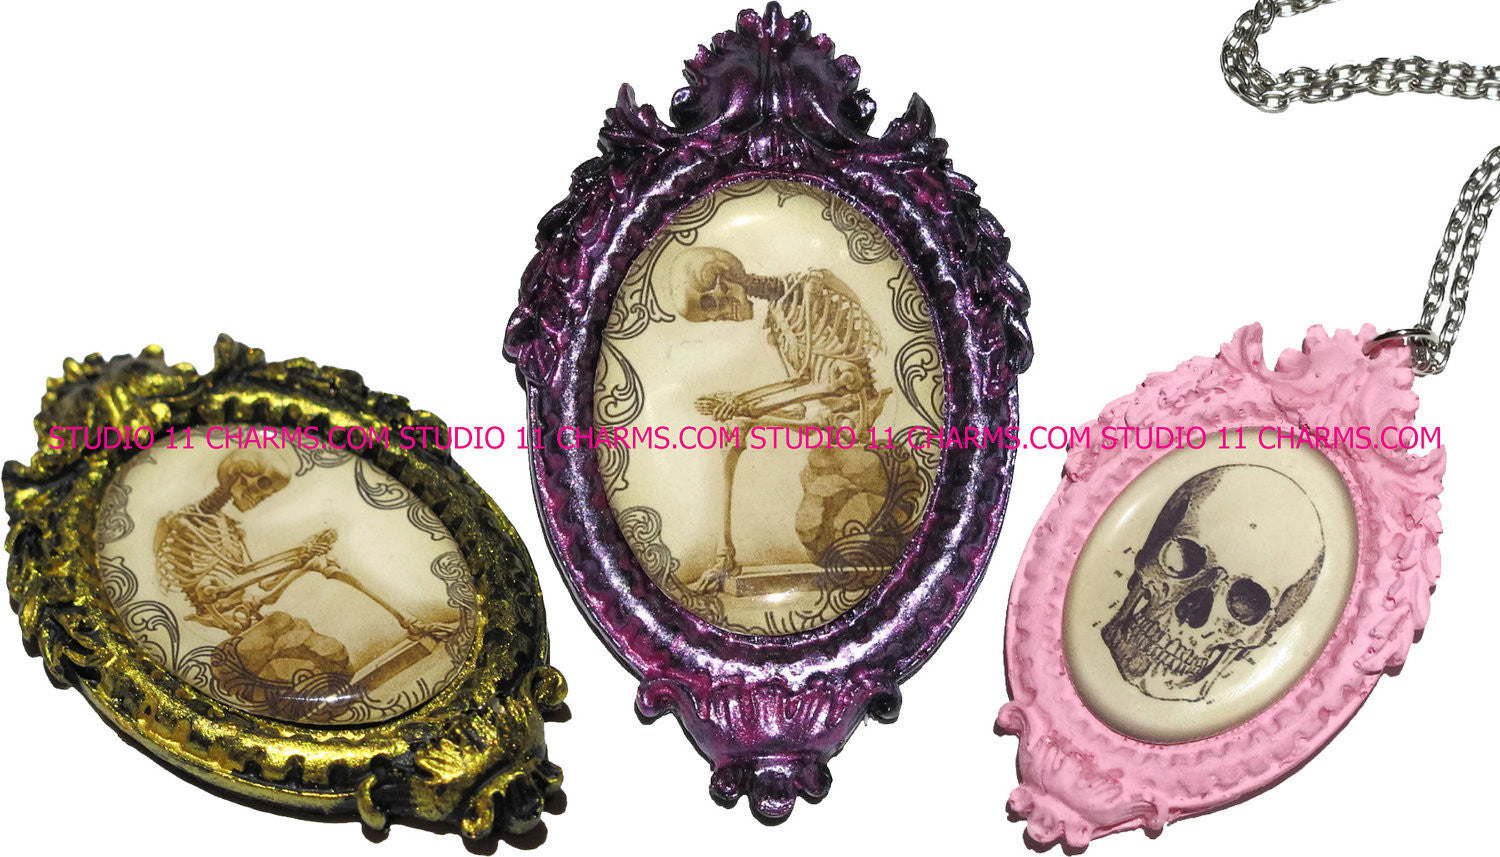 40x30, 18x25, 13X18 Resin Cameo LOW DOME Cabochon. Anatomy 1b Clock